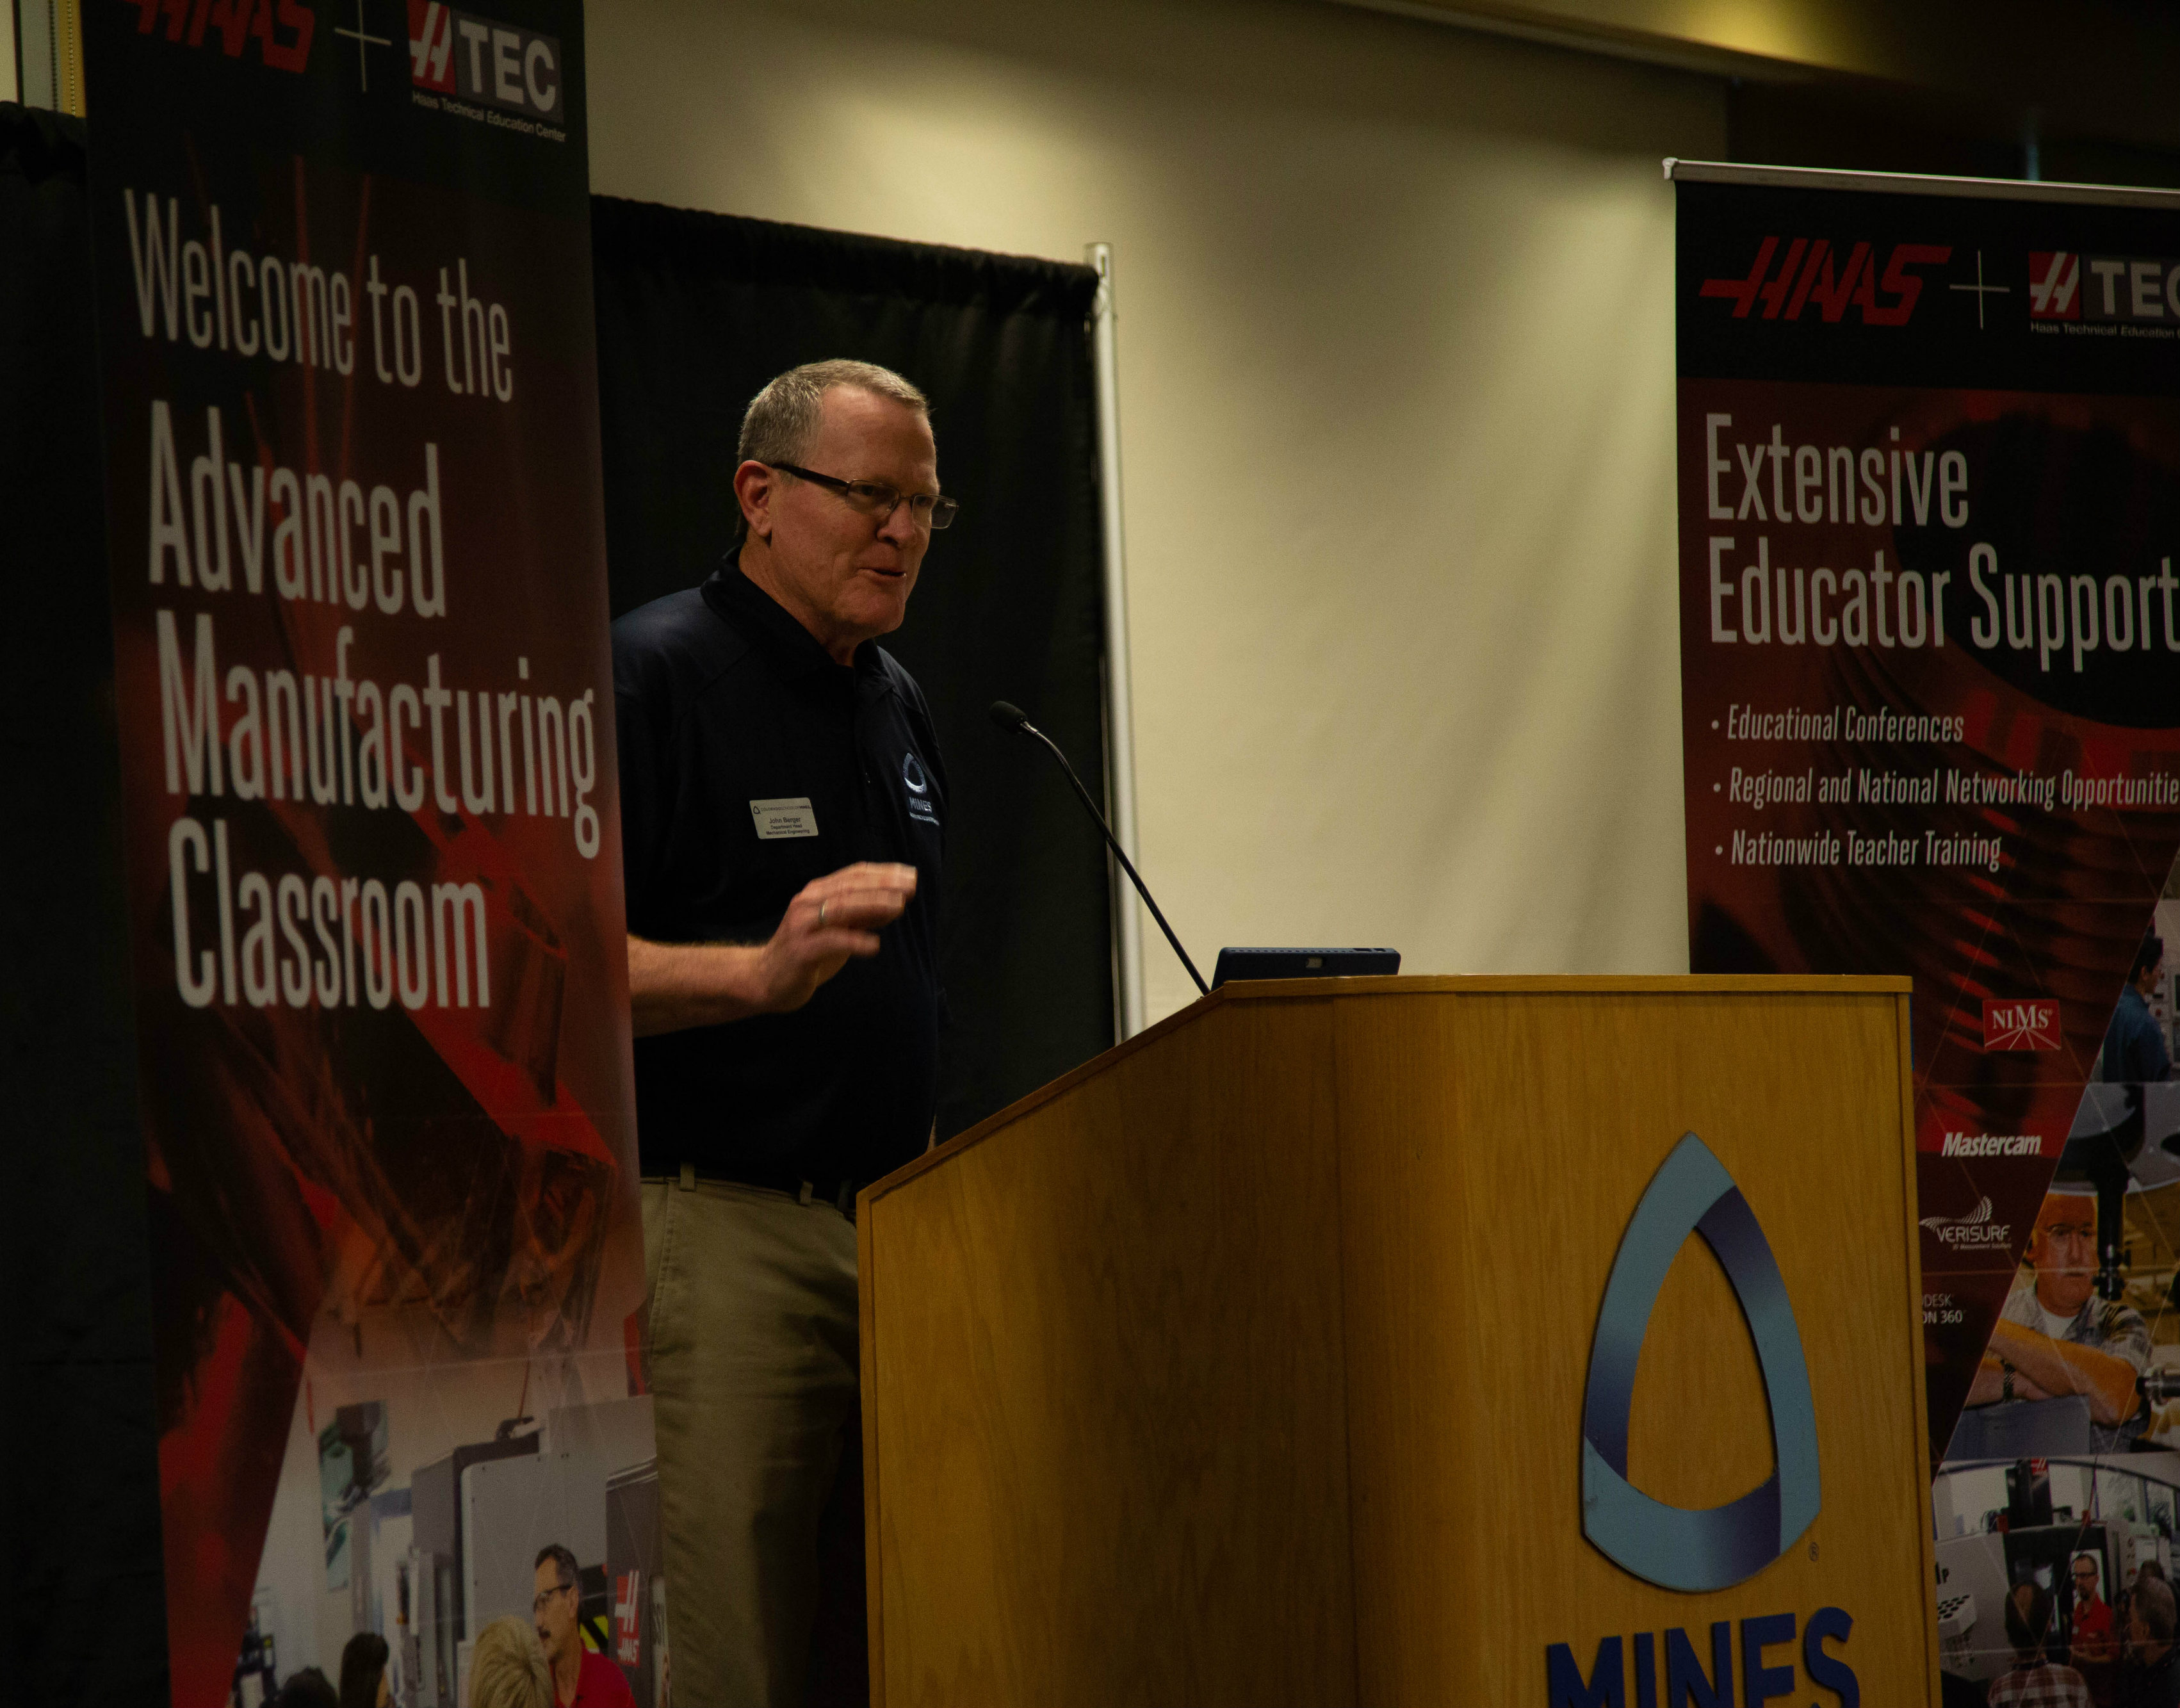 Mines Professor John Berger at the 2nd Rocky Mountain Regional HTEC CNC Educator Conference